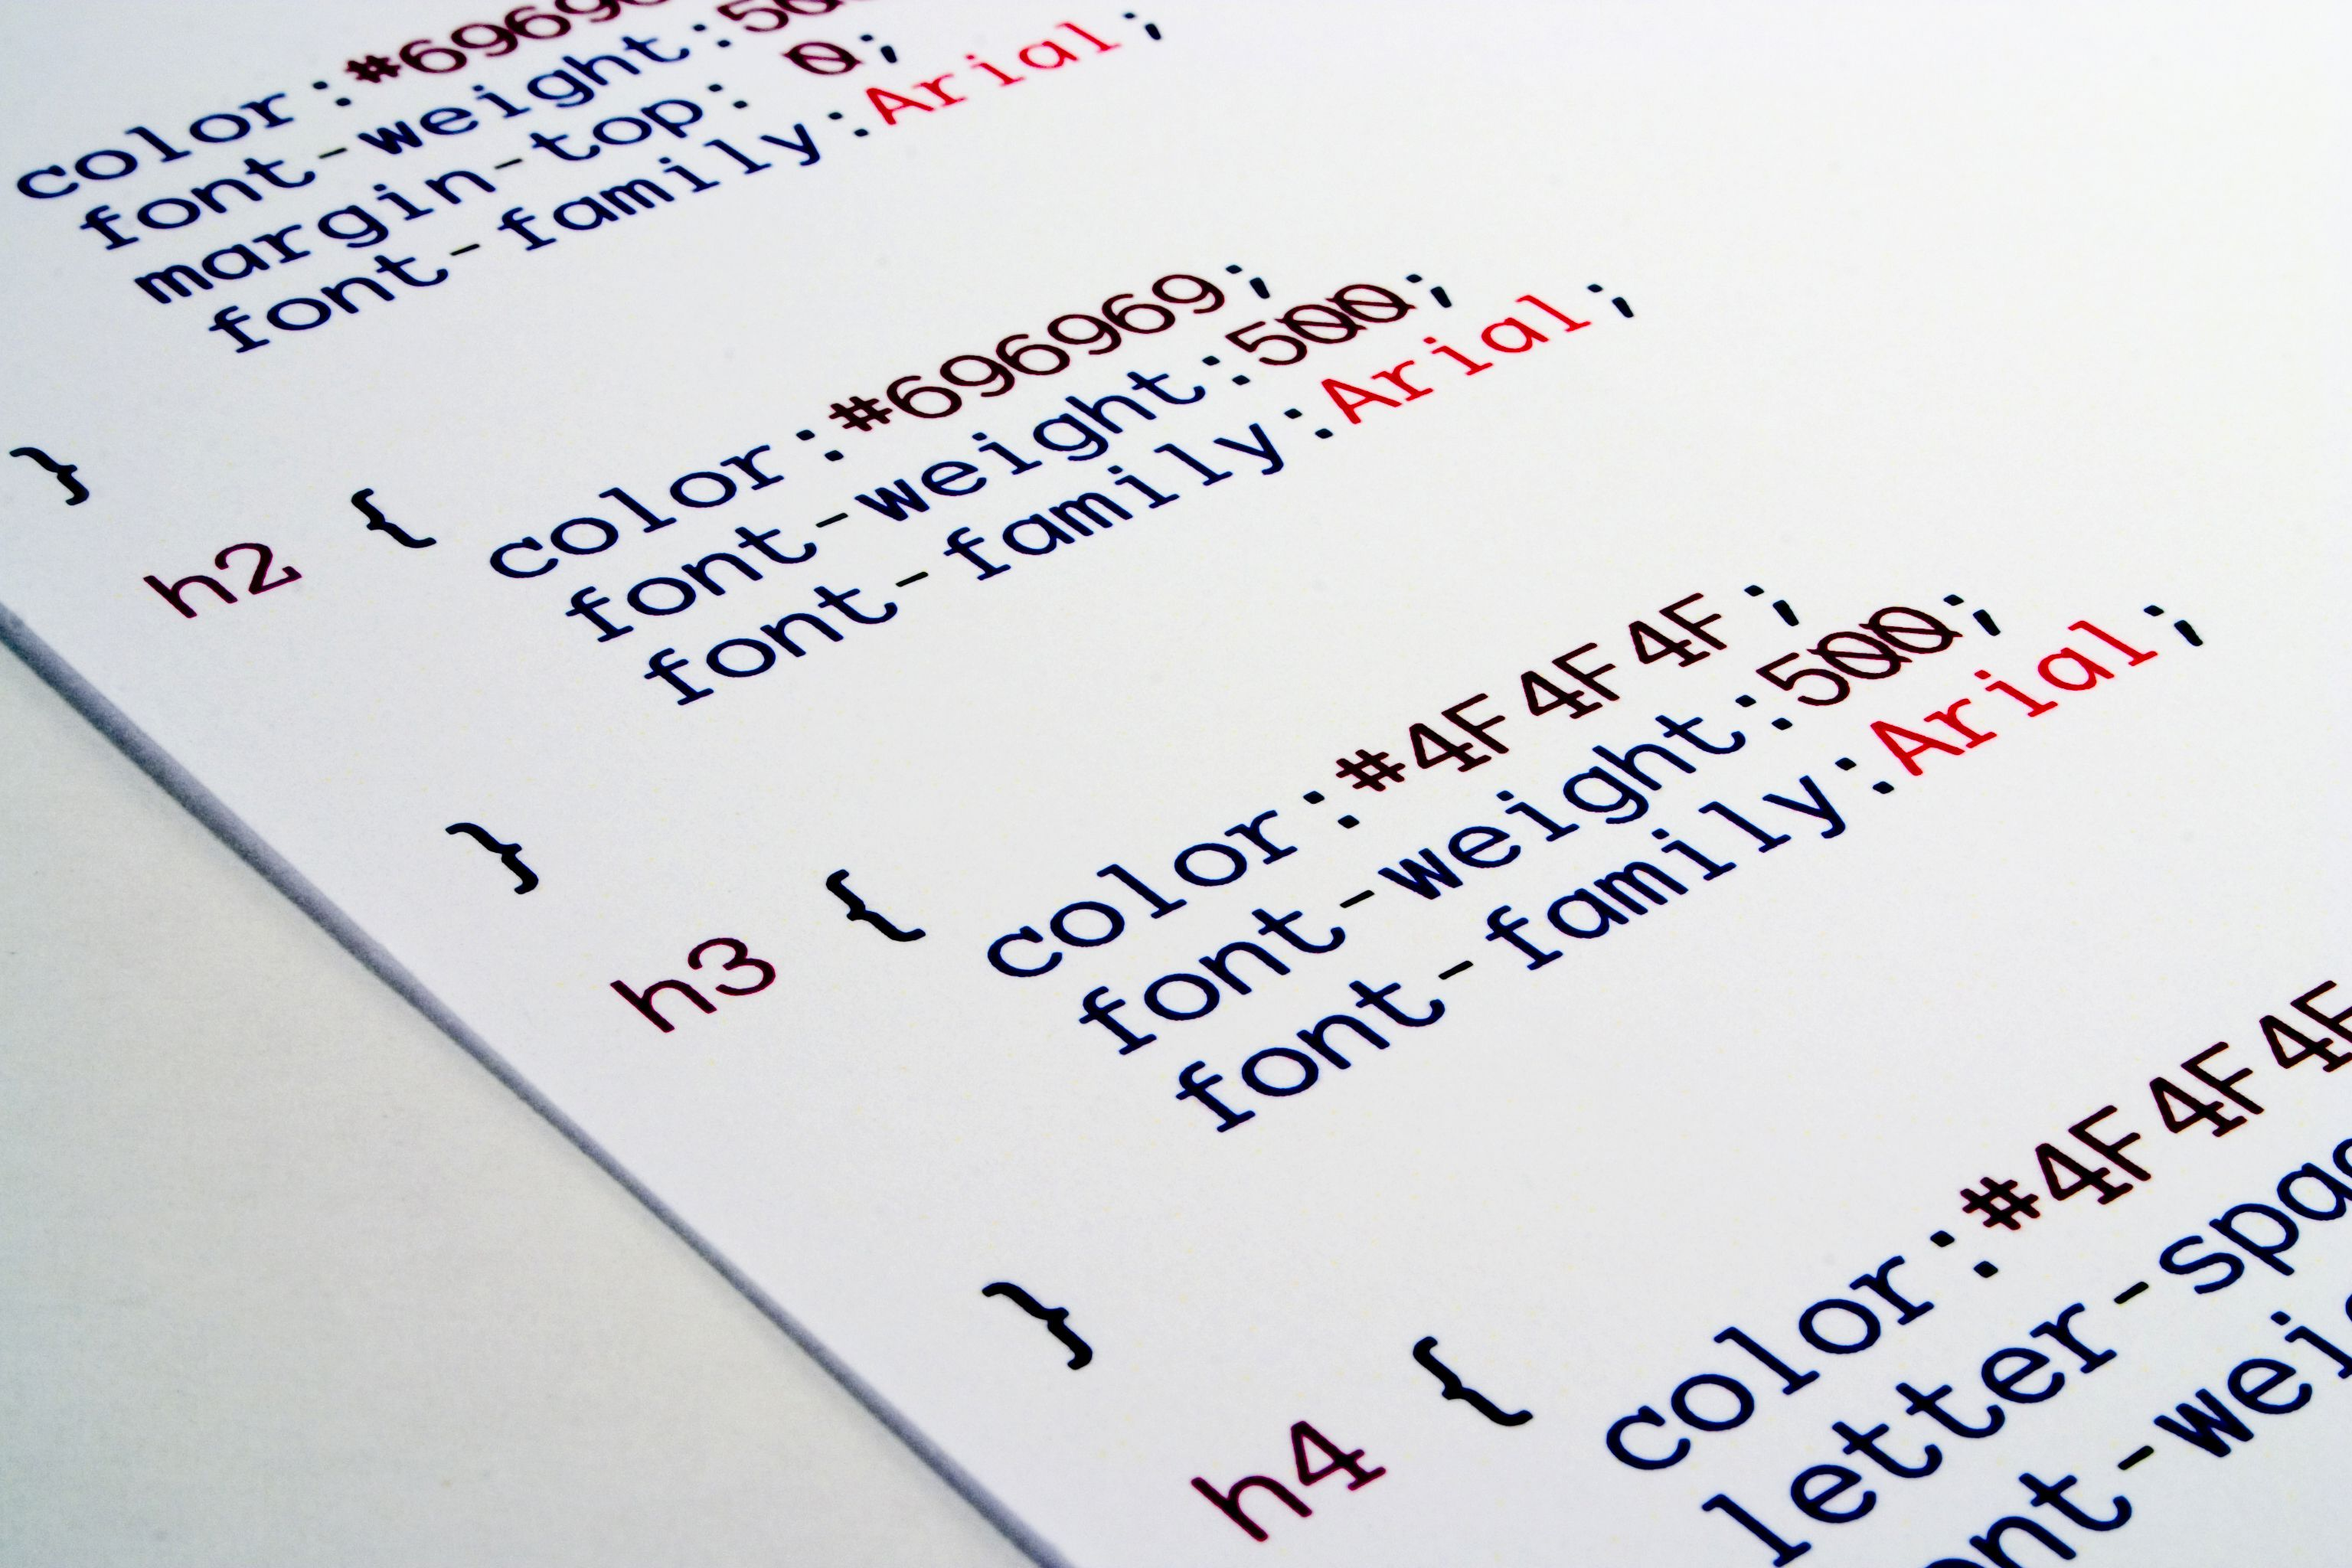 What Does !important Mean in CSS?